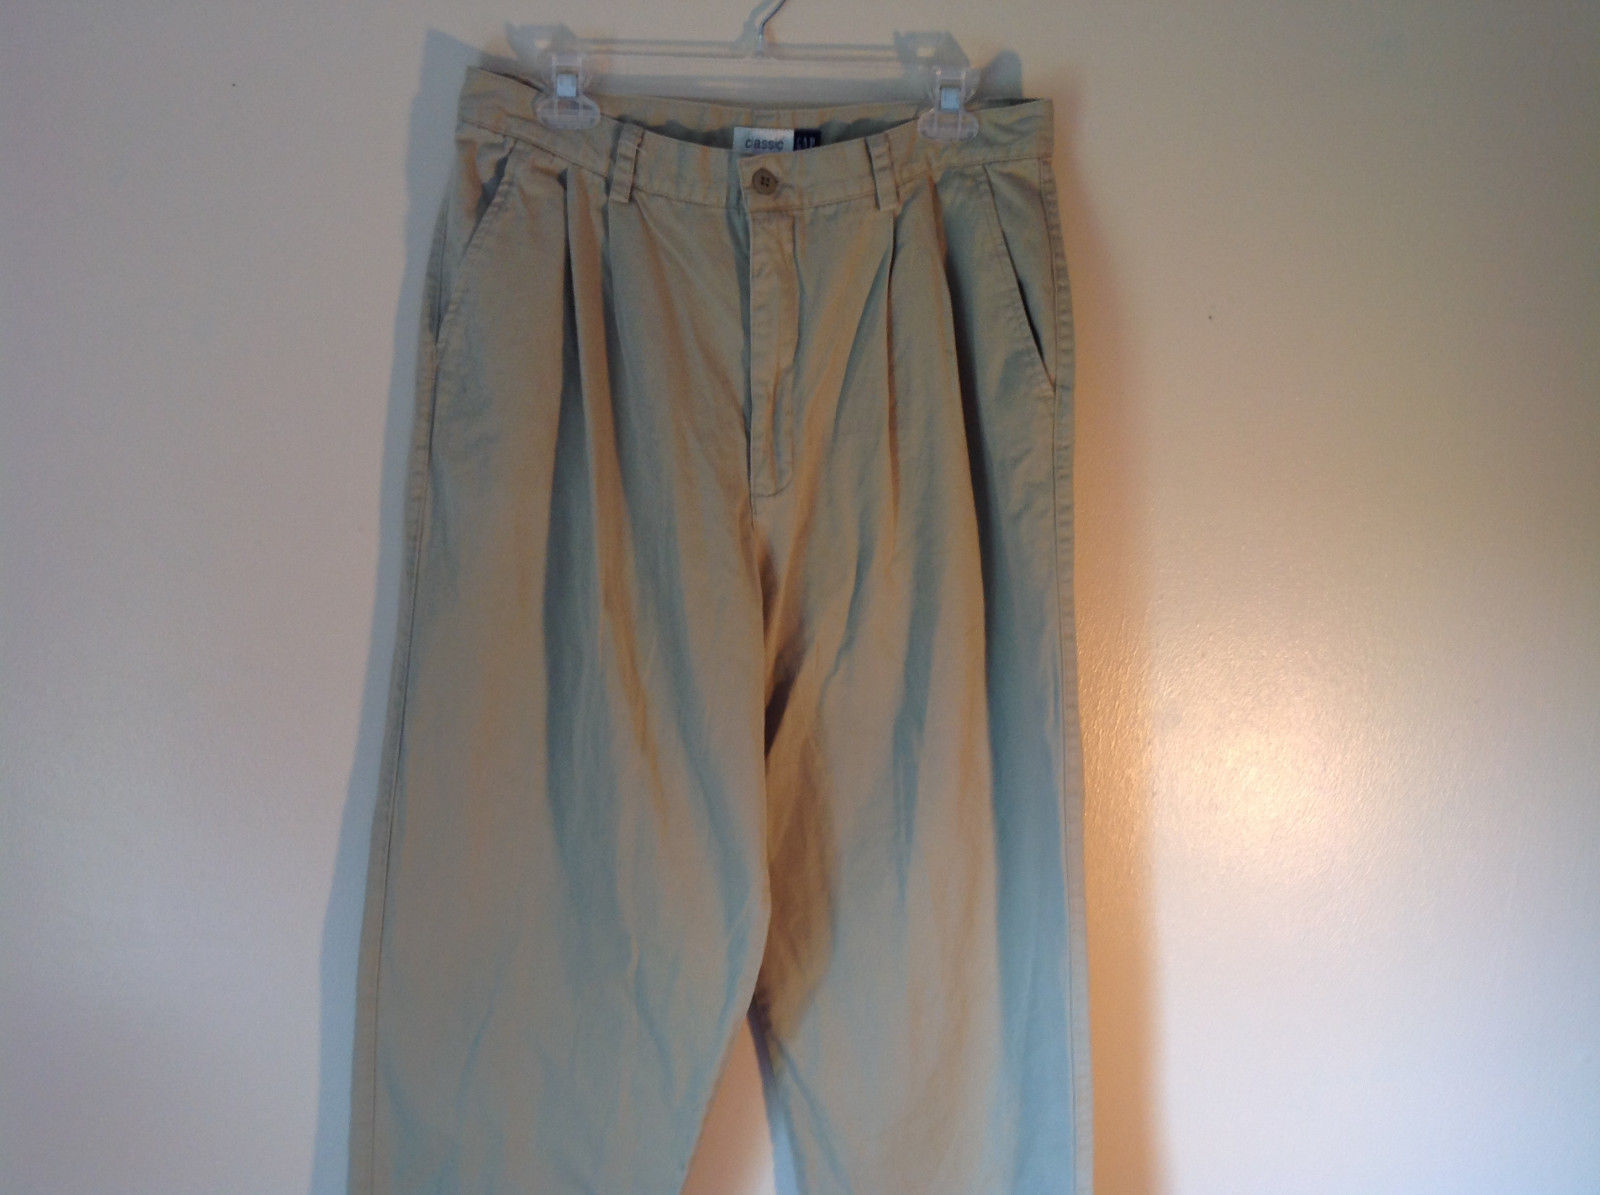 Khakis by Gap Classic Front and Back Pockets NO SIZE TAG Measurements Below